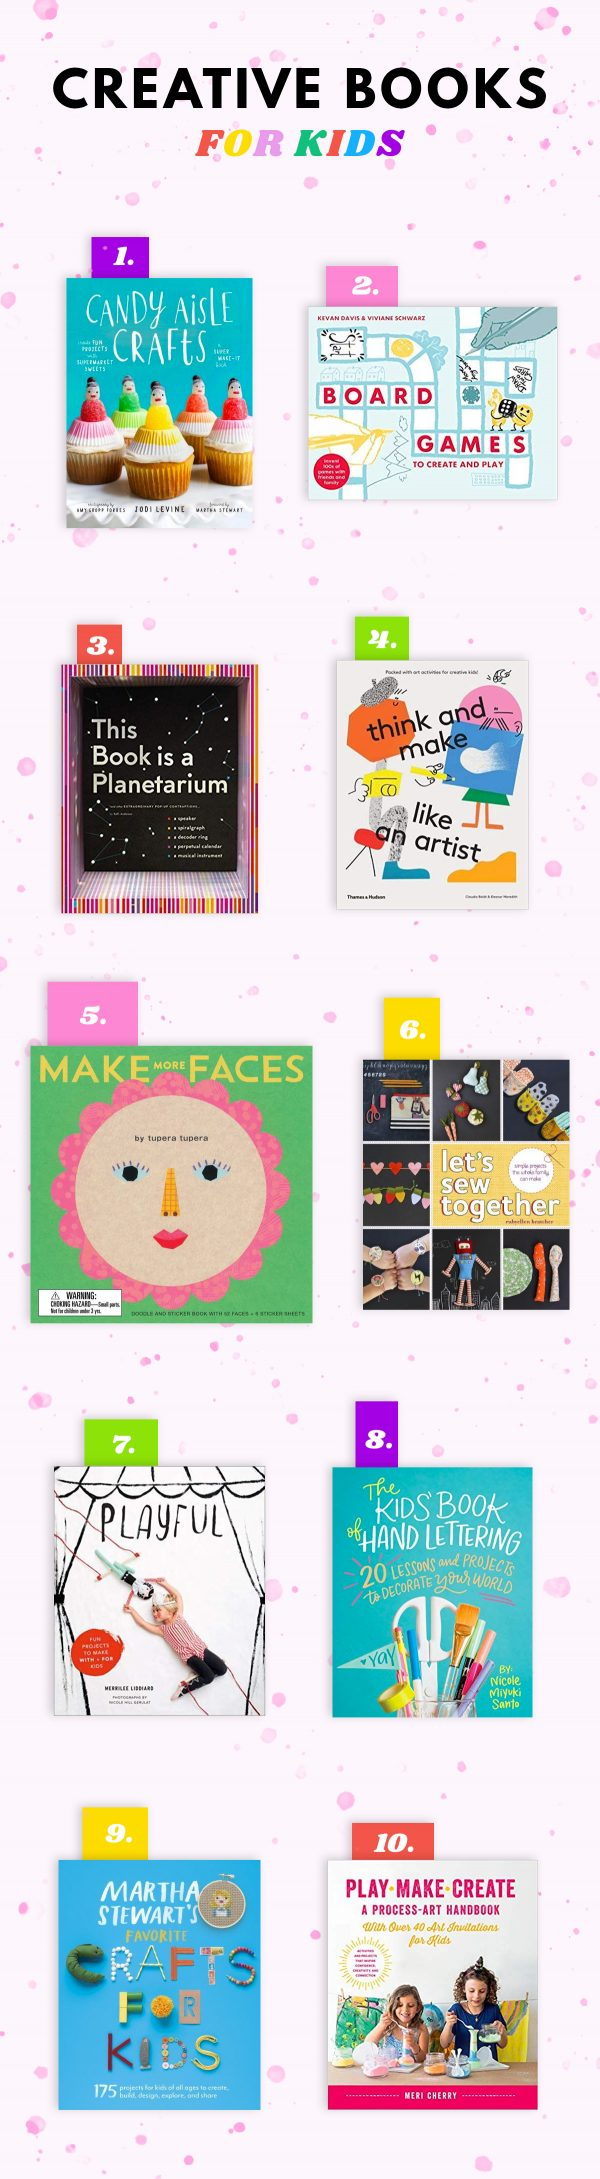 Creative Books for Kids and Teens